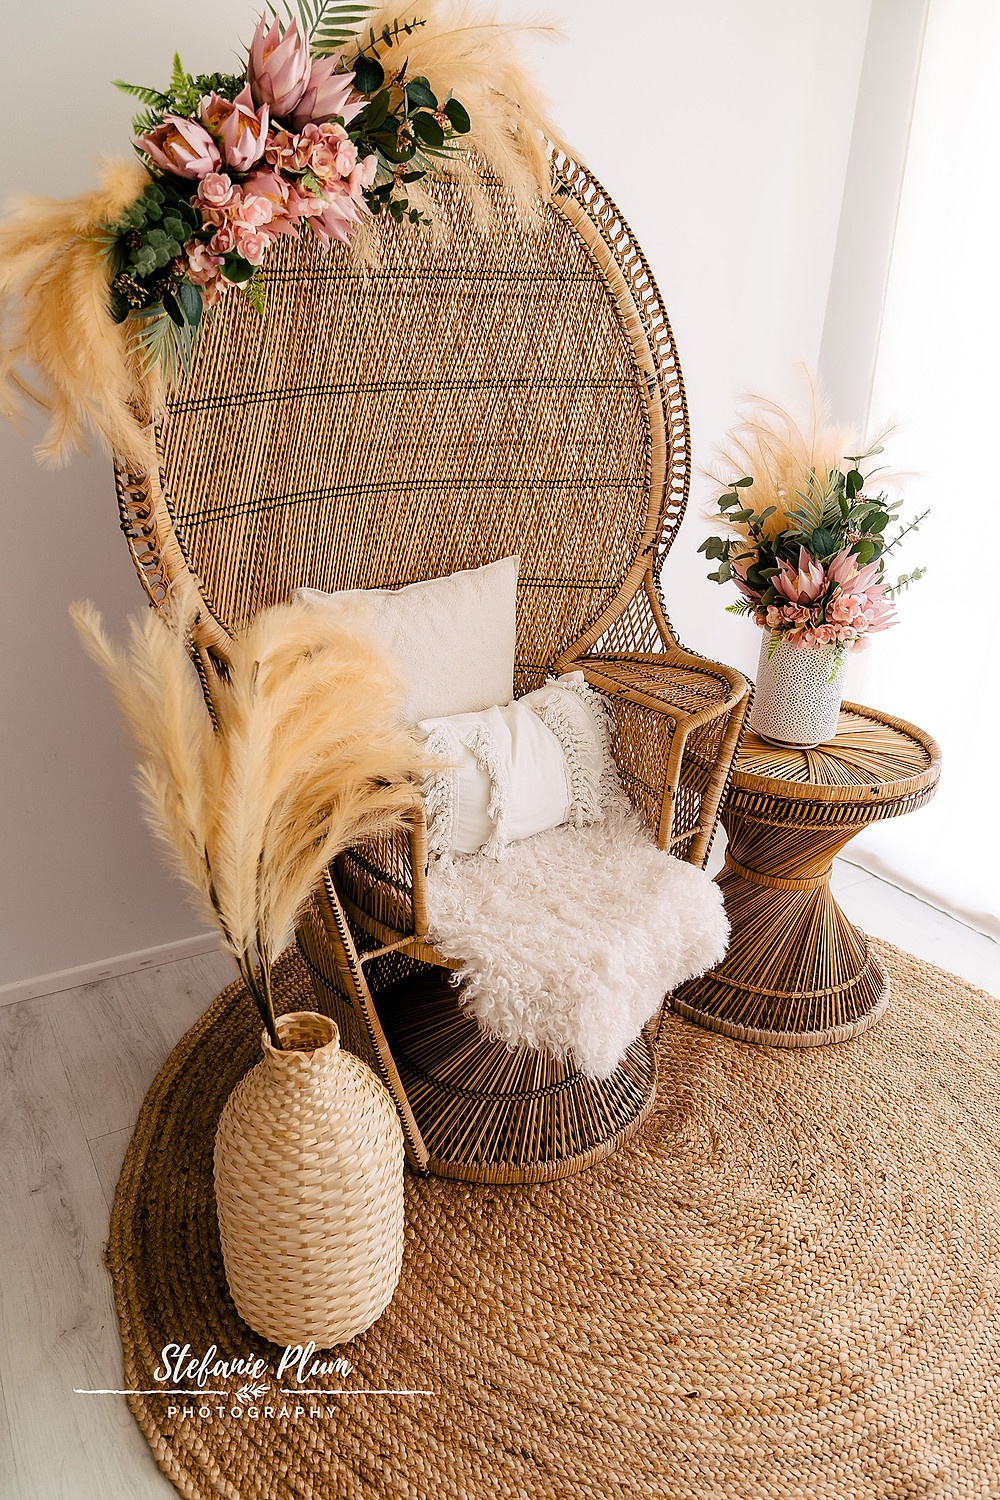 Peacock Chair with flowers